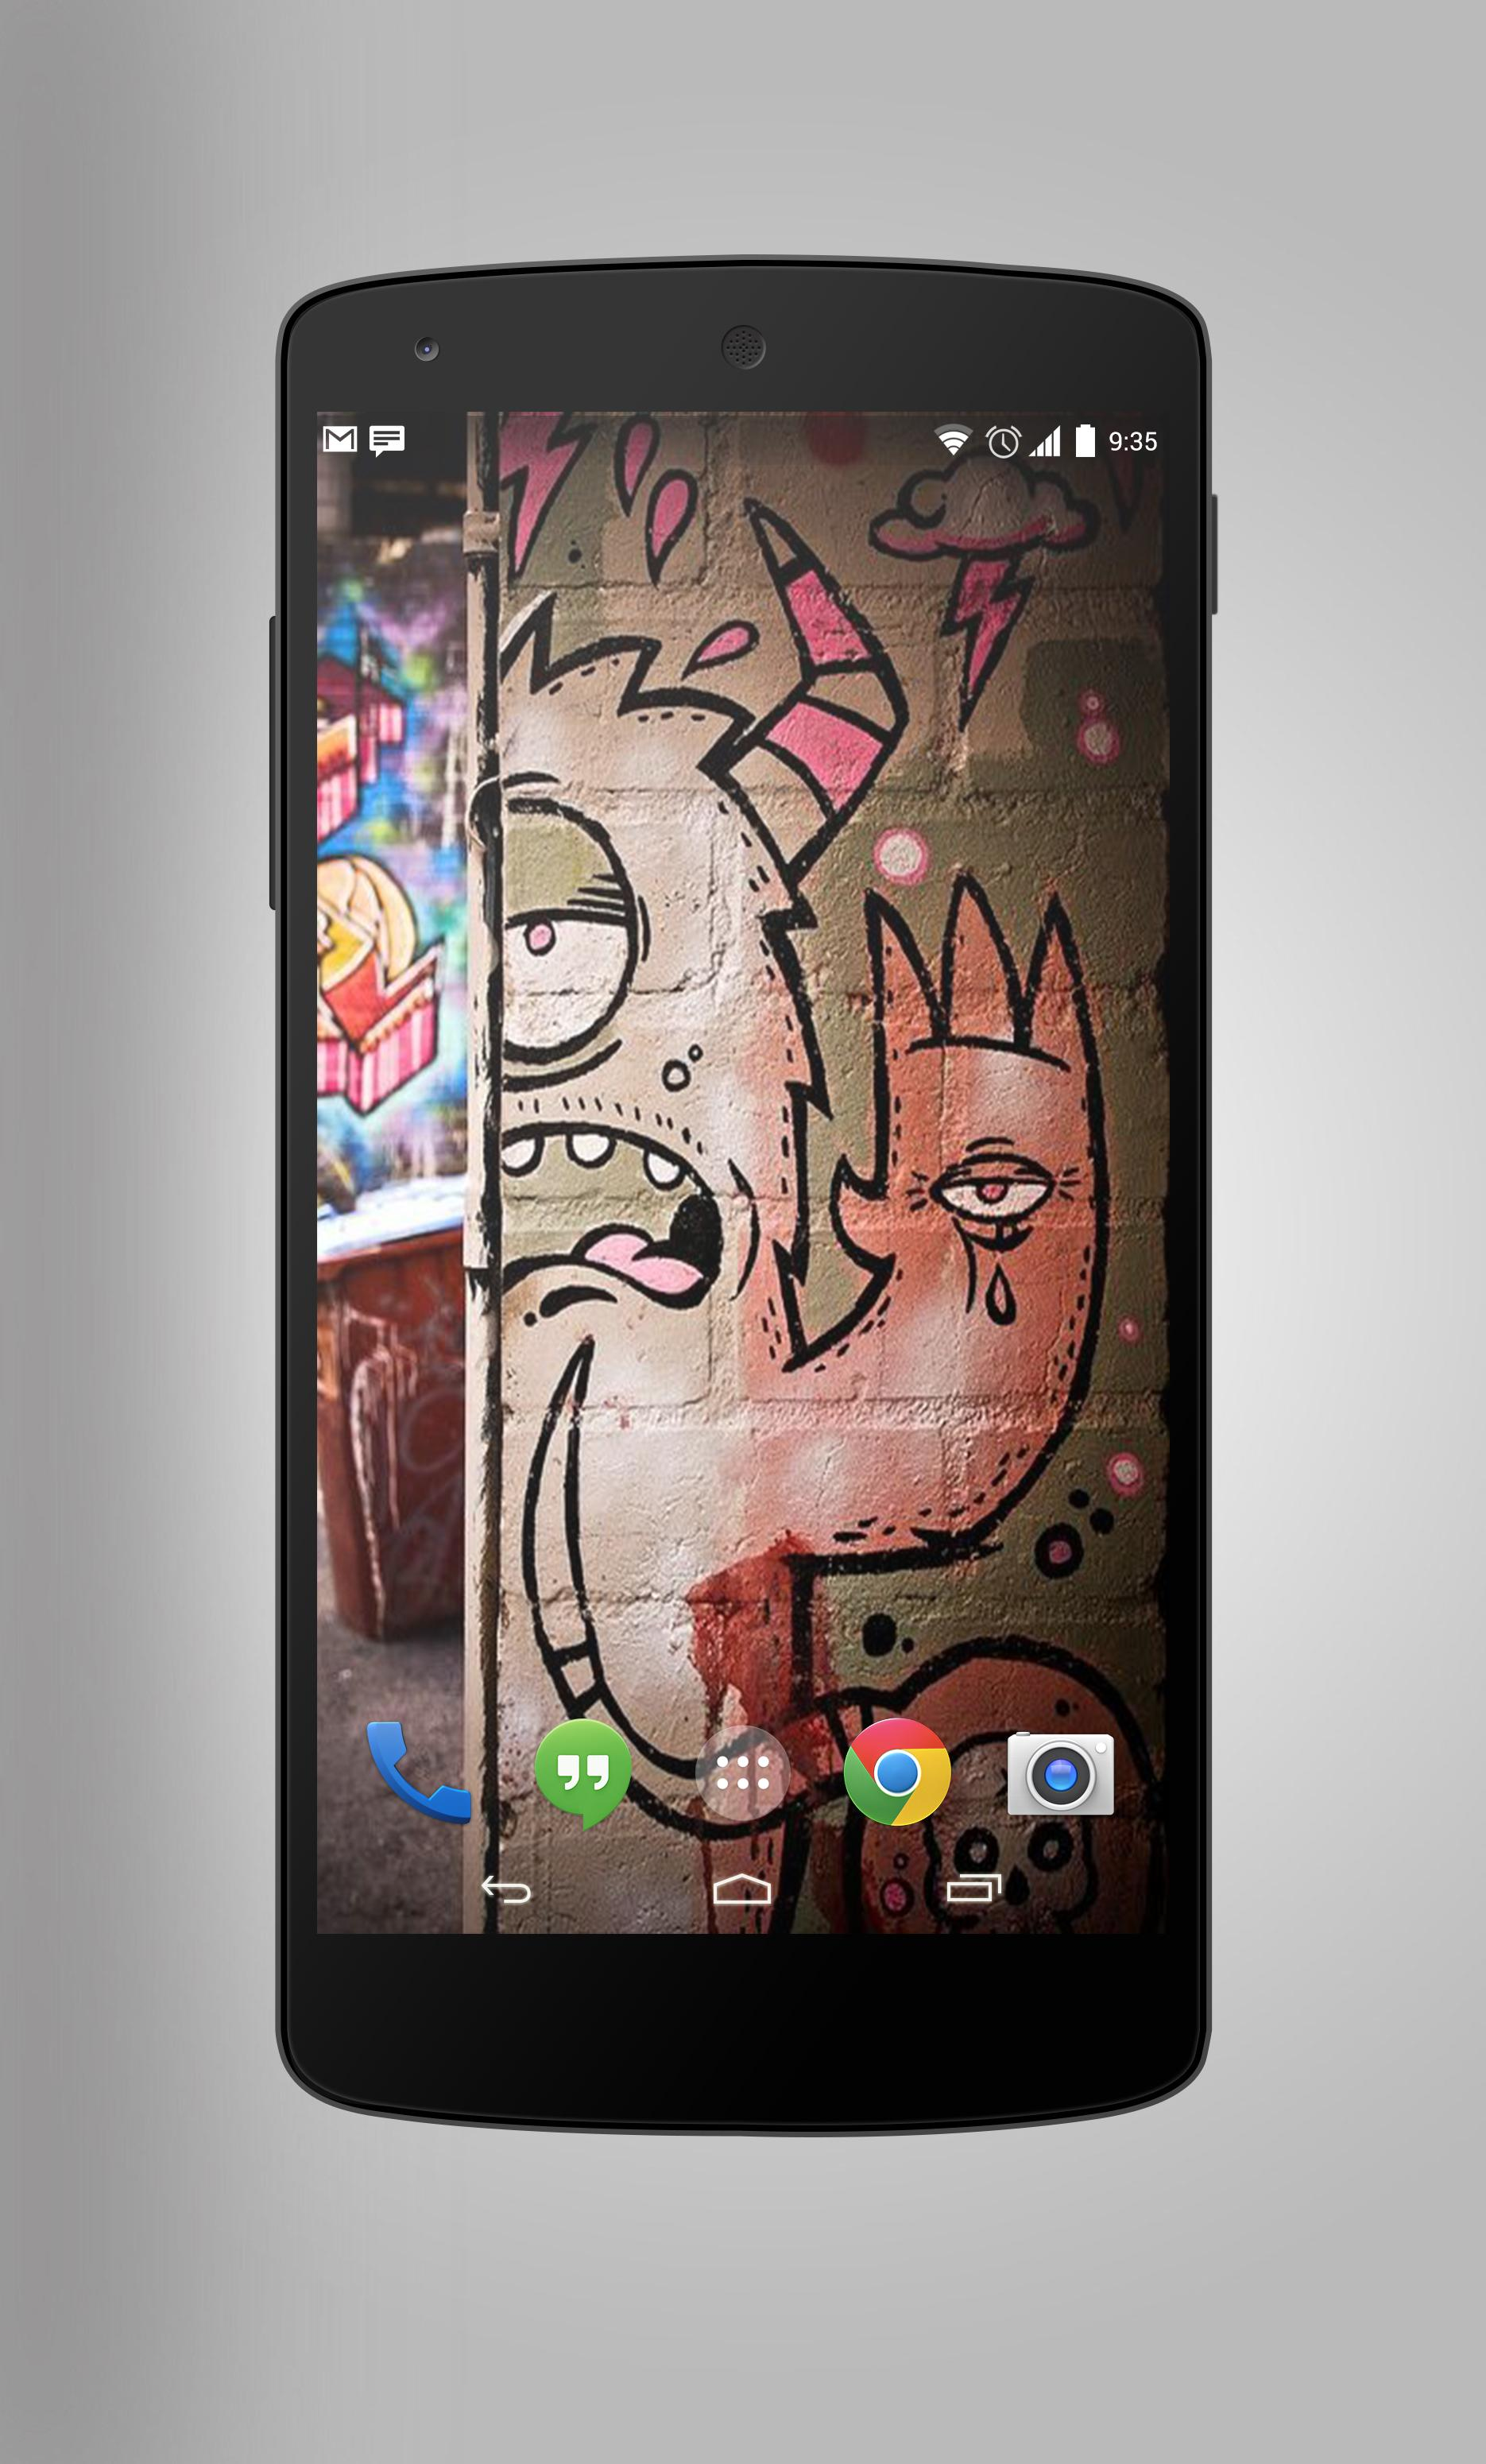 Cool Graffiti Wallpaper For Android Apk Download